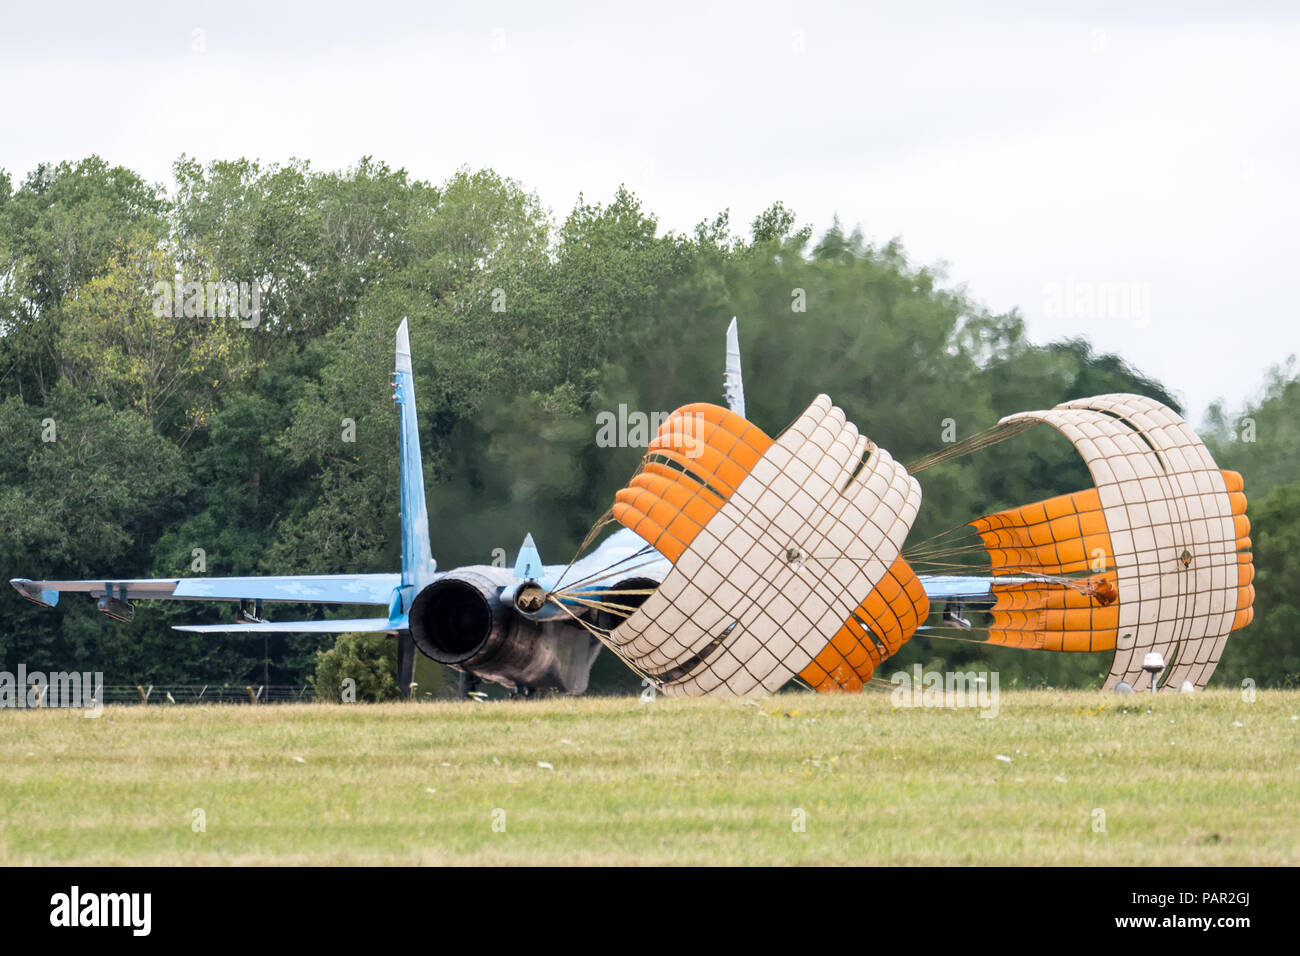 RAF FAIRFORD, GLOUCESTERSHIRE, UK JULY 2017: A Ukranian Air Force Sukhoi SU-27 Flanker deploys it's landing chutes as it lands at RAF Fairford during - Stock Image